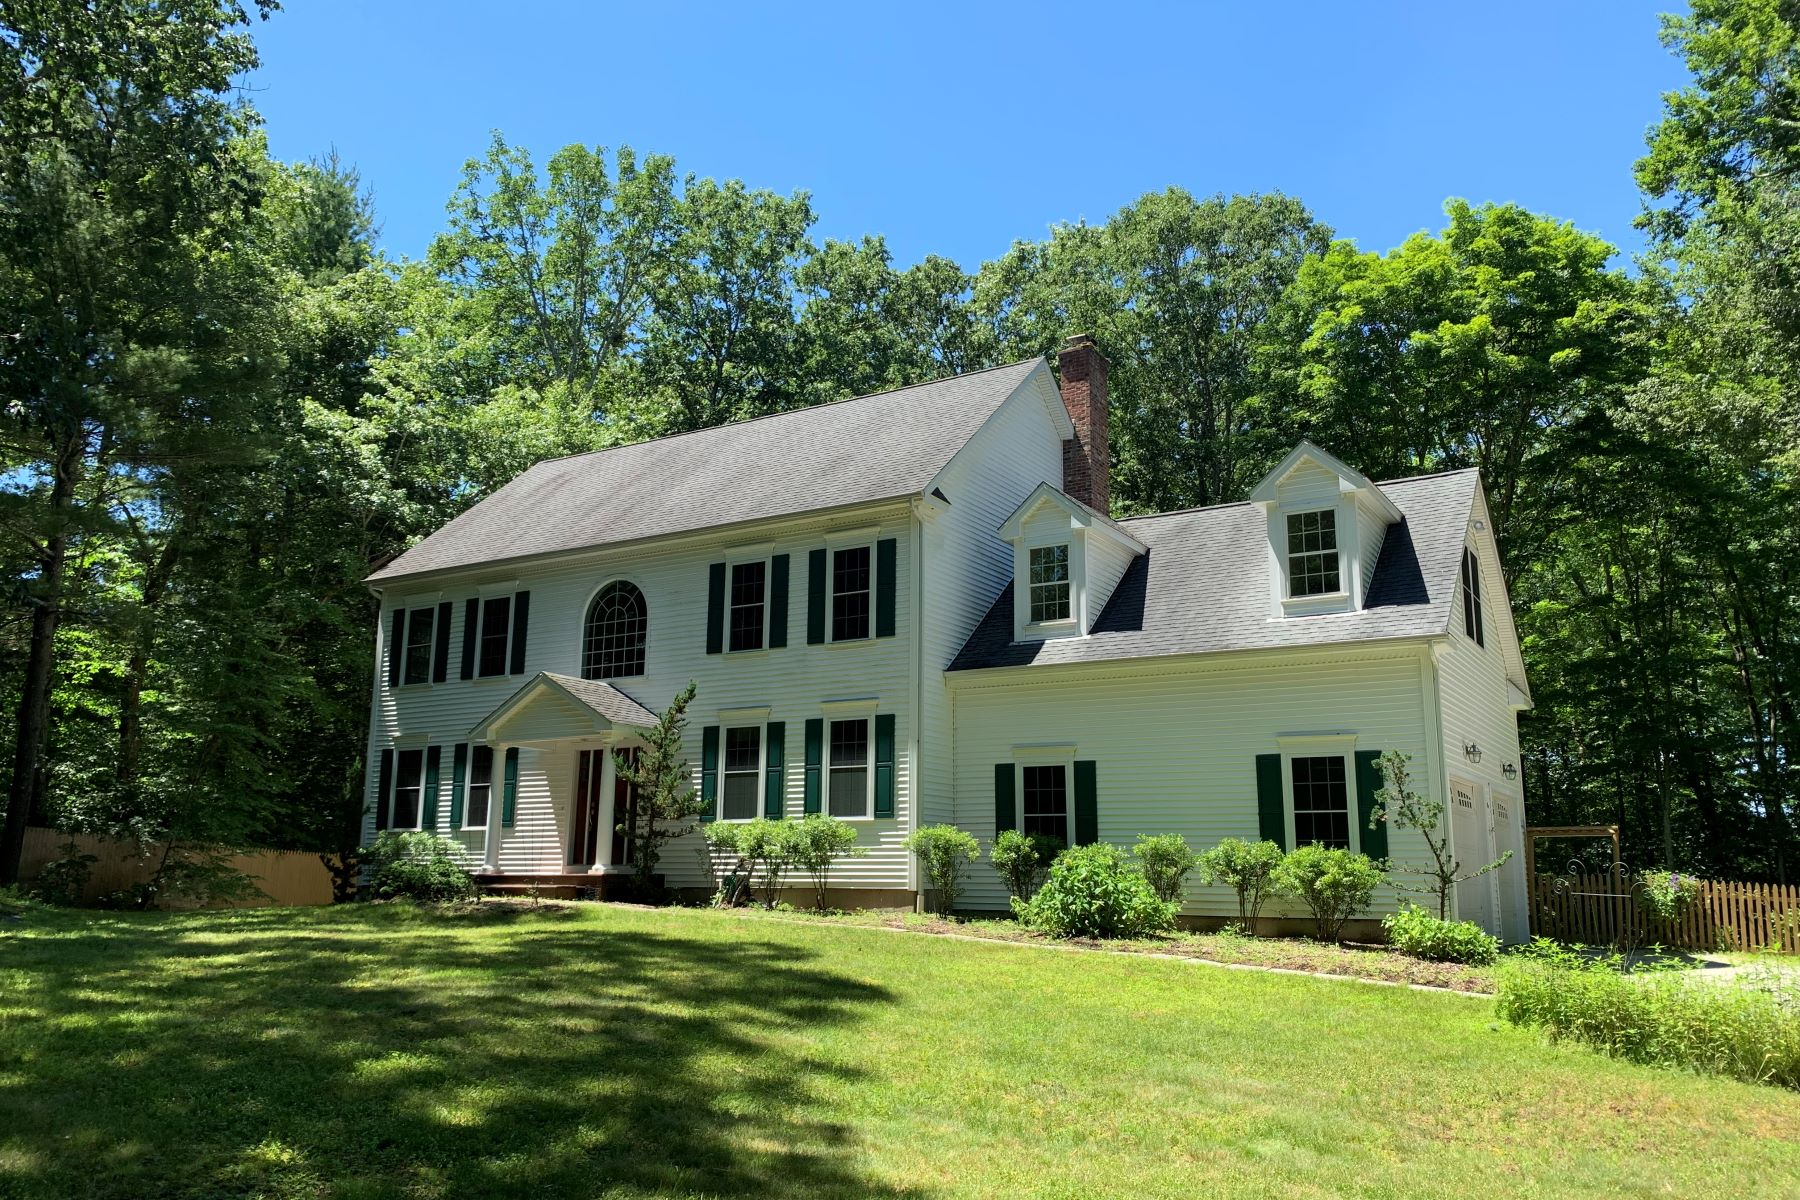 Single Family Homes for Sale at Gorgeous Setting! 25 Cow Hill Road Killingworth, Connecticut 06419 United States